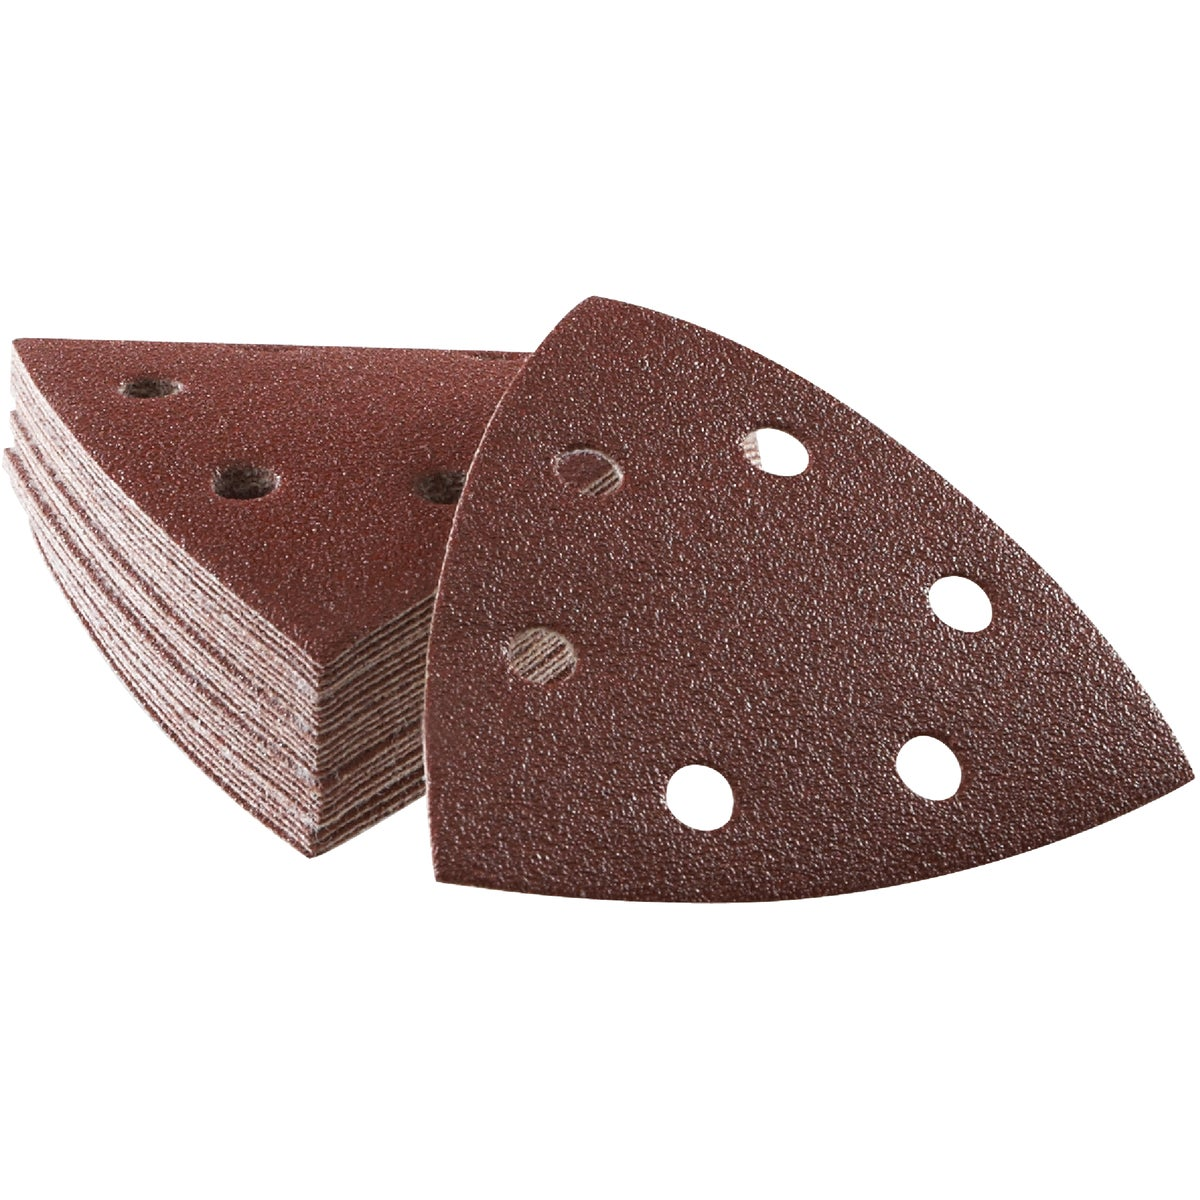 80G DETAIL SANDPAPER - SDTR080 by Robt Bosch Tool Corp